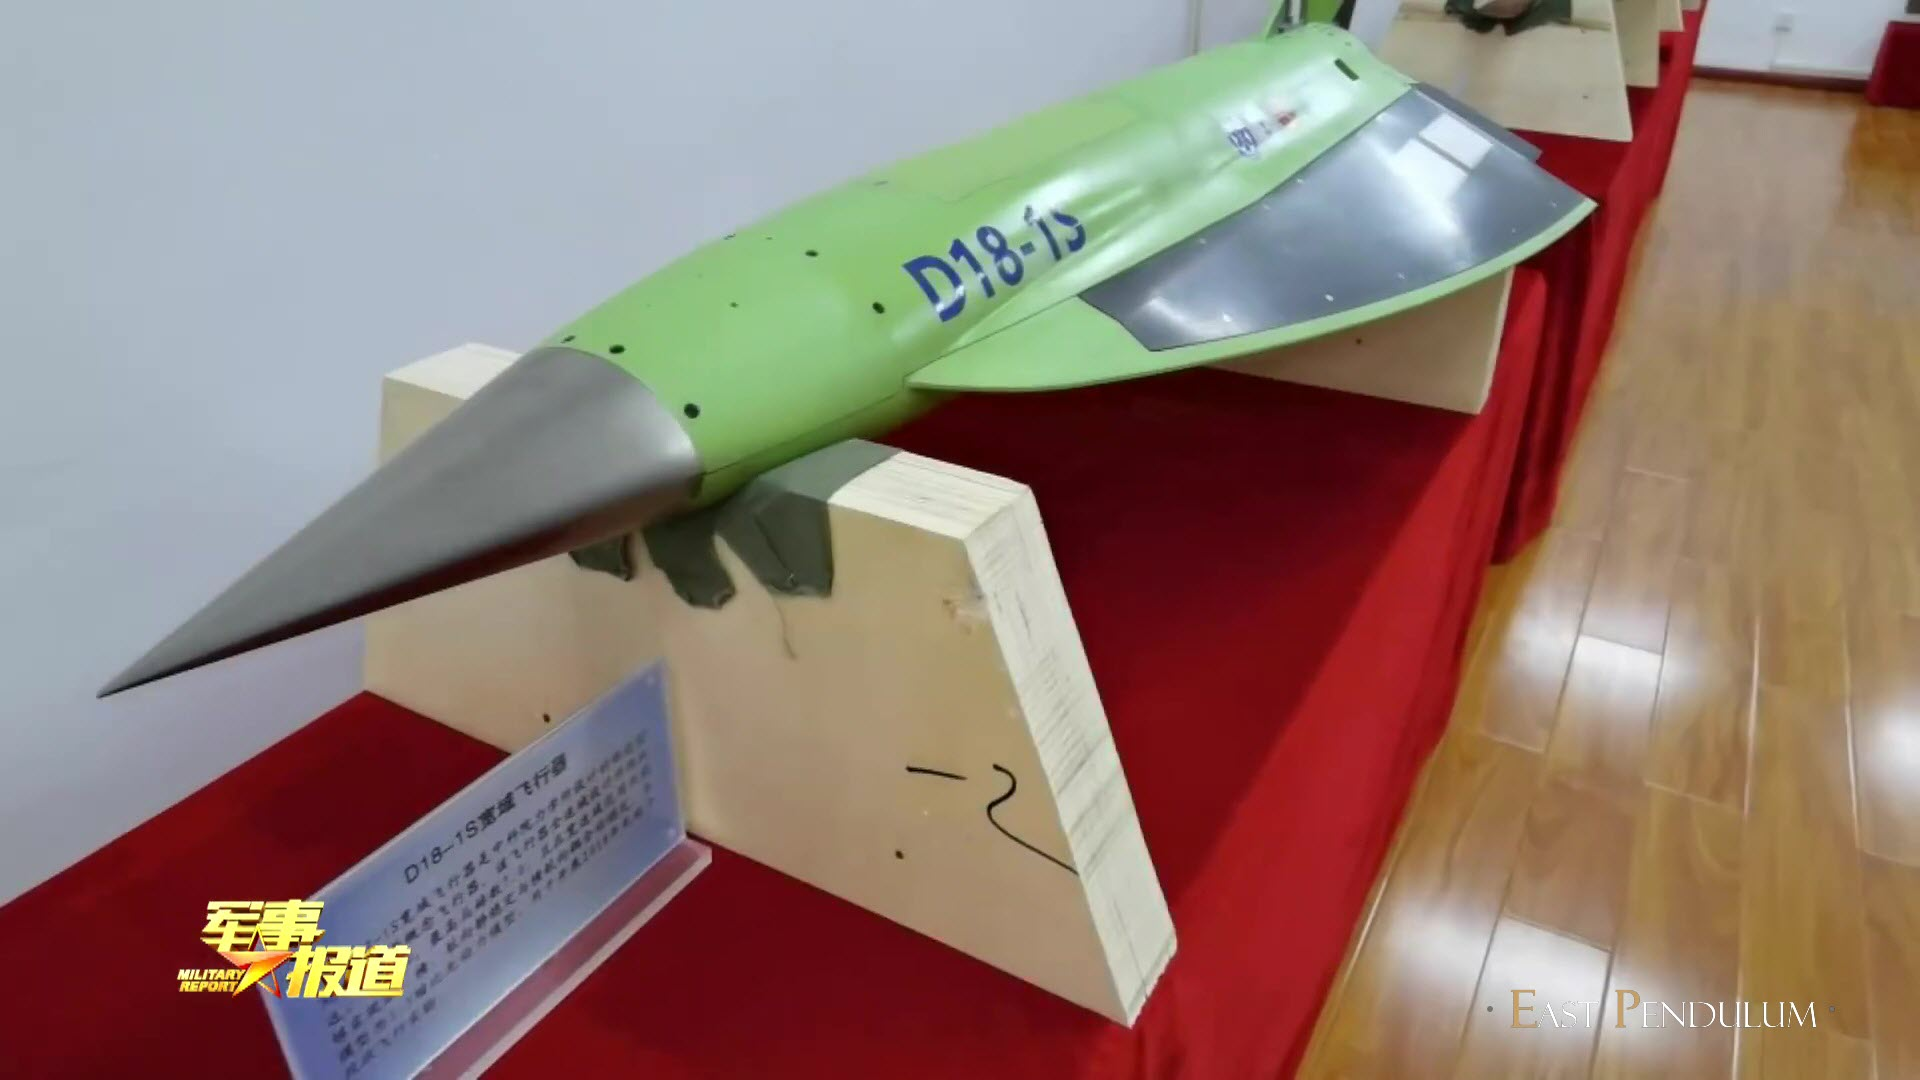 Institute of Mechanics, Chinese Academy of Sciences (IMCAS) prototype - D18-1S.jpg